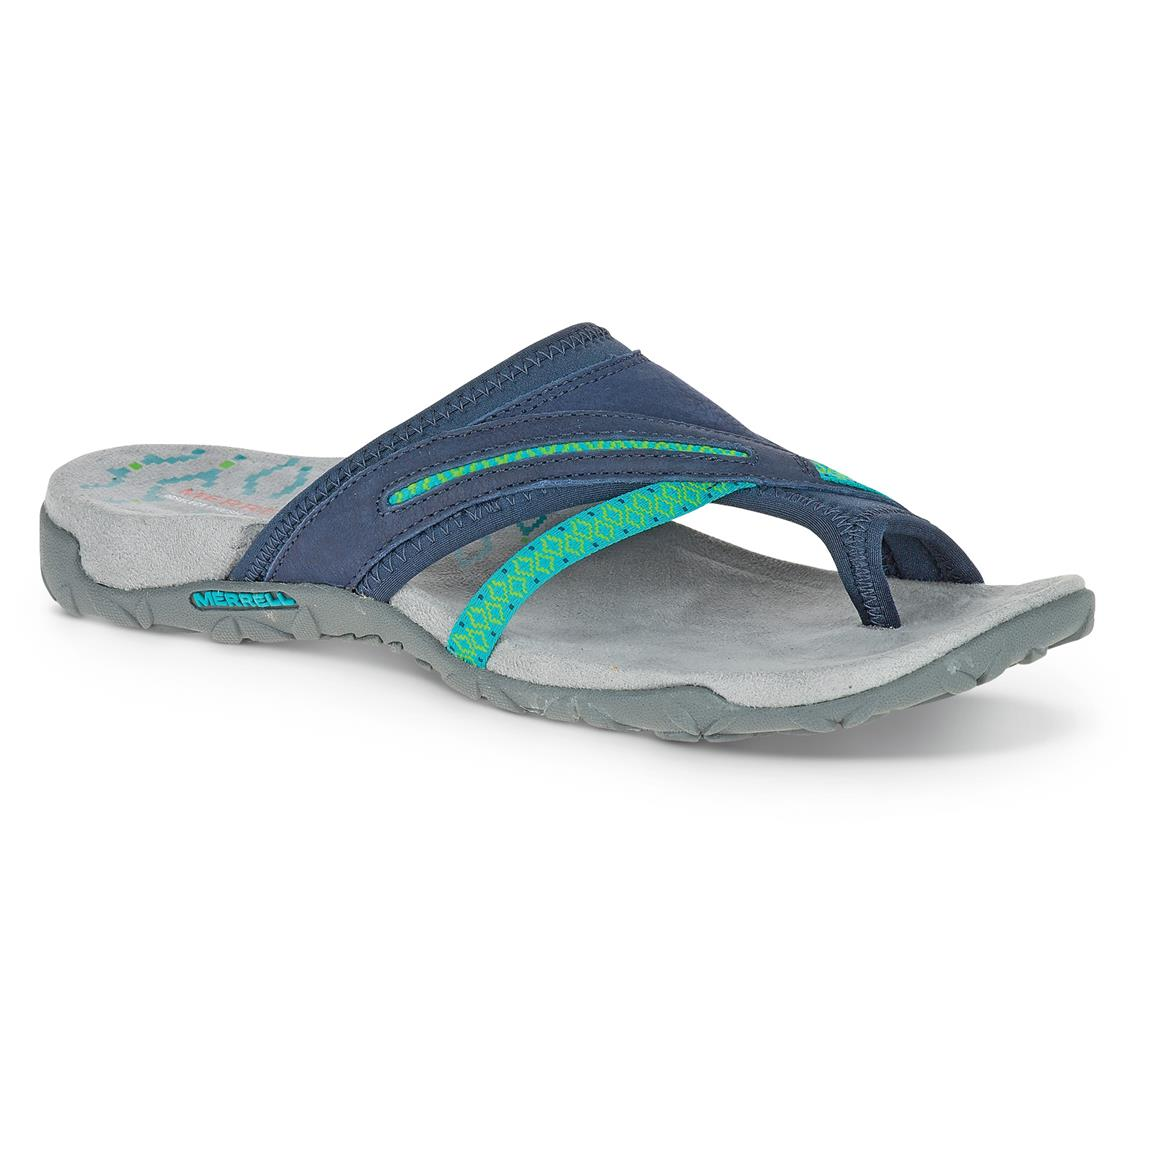 Merrell Women's Terran Post II Sandals, Navy